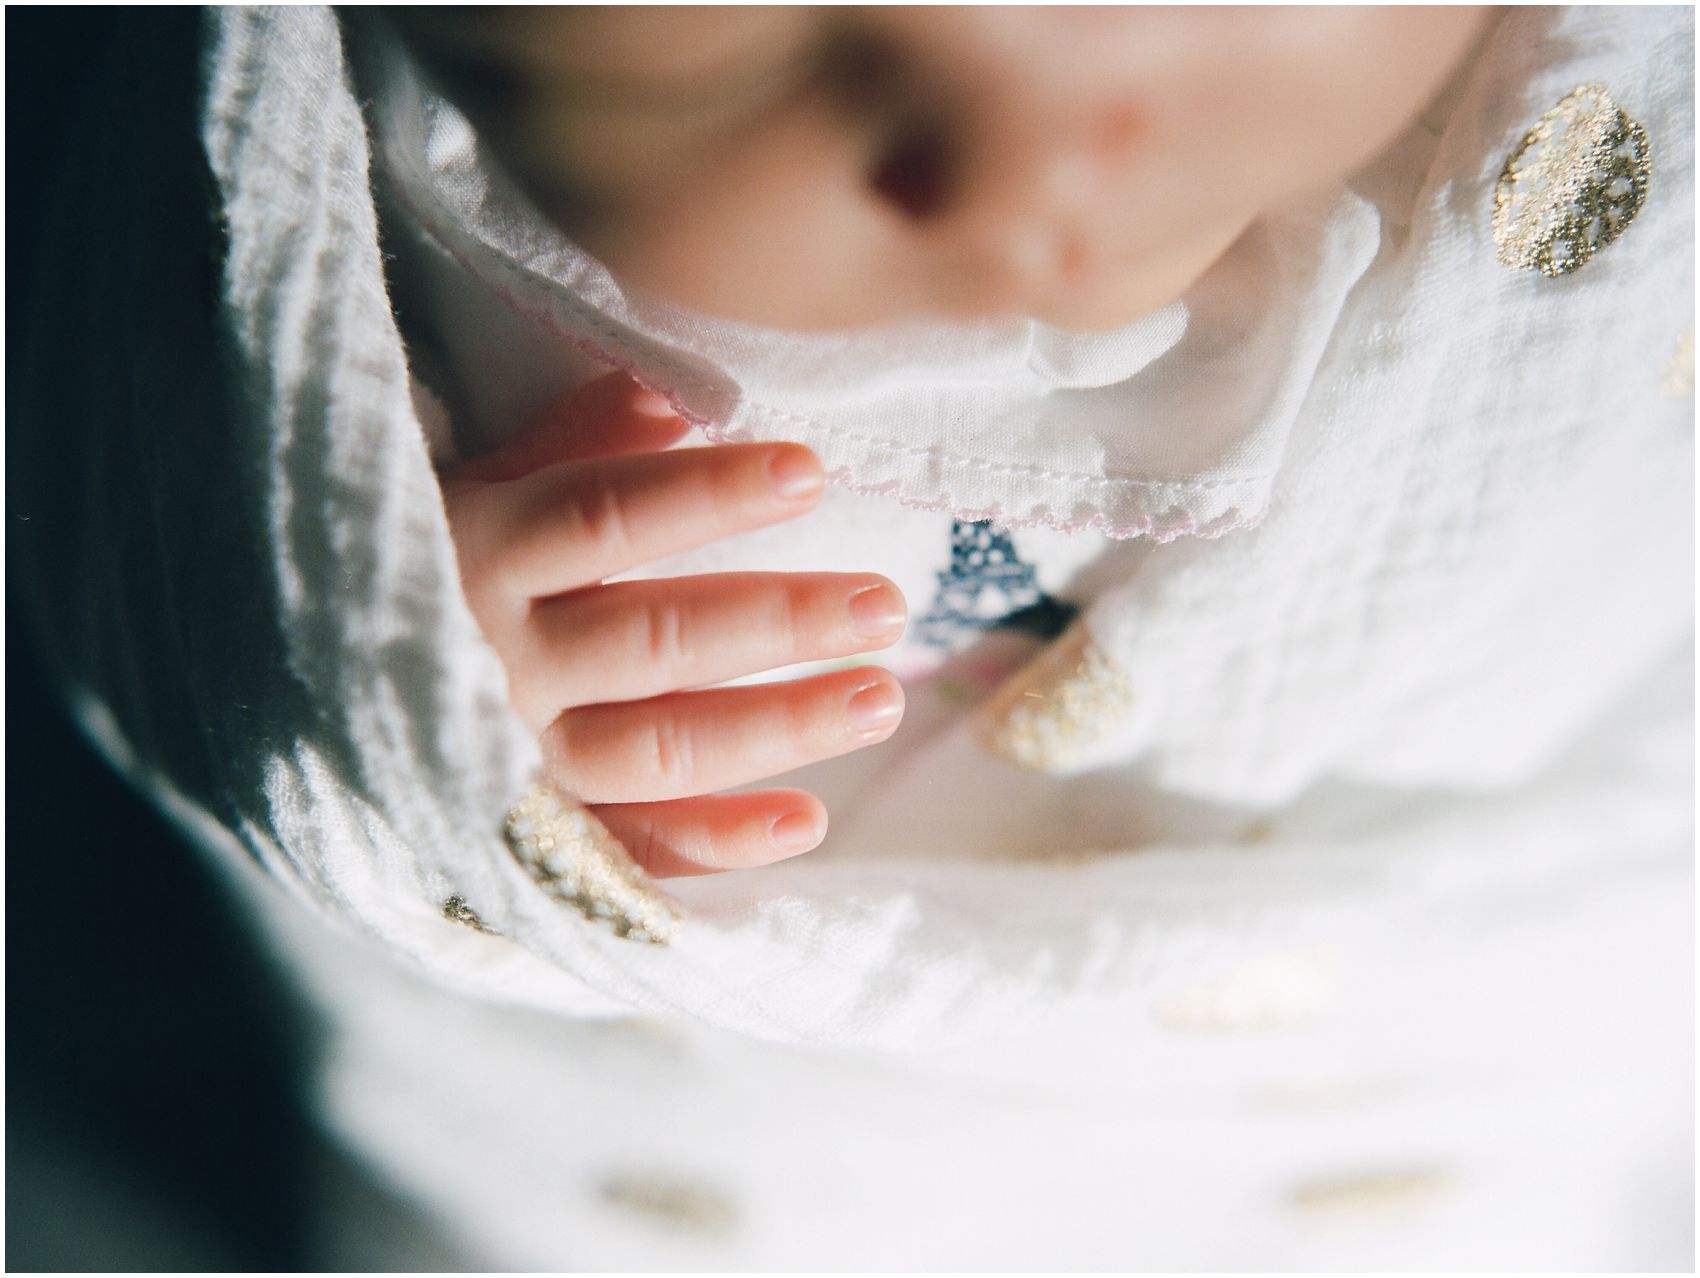 newborn photography of tiny baby fingers in a close up portrait